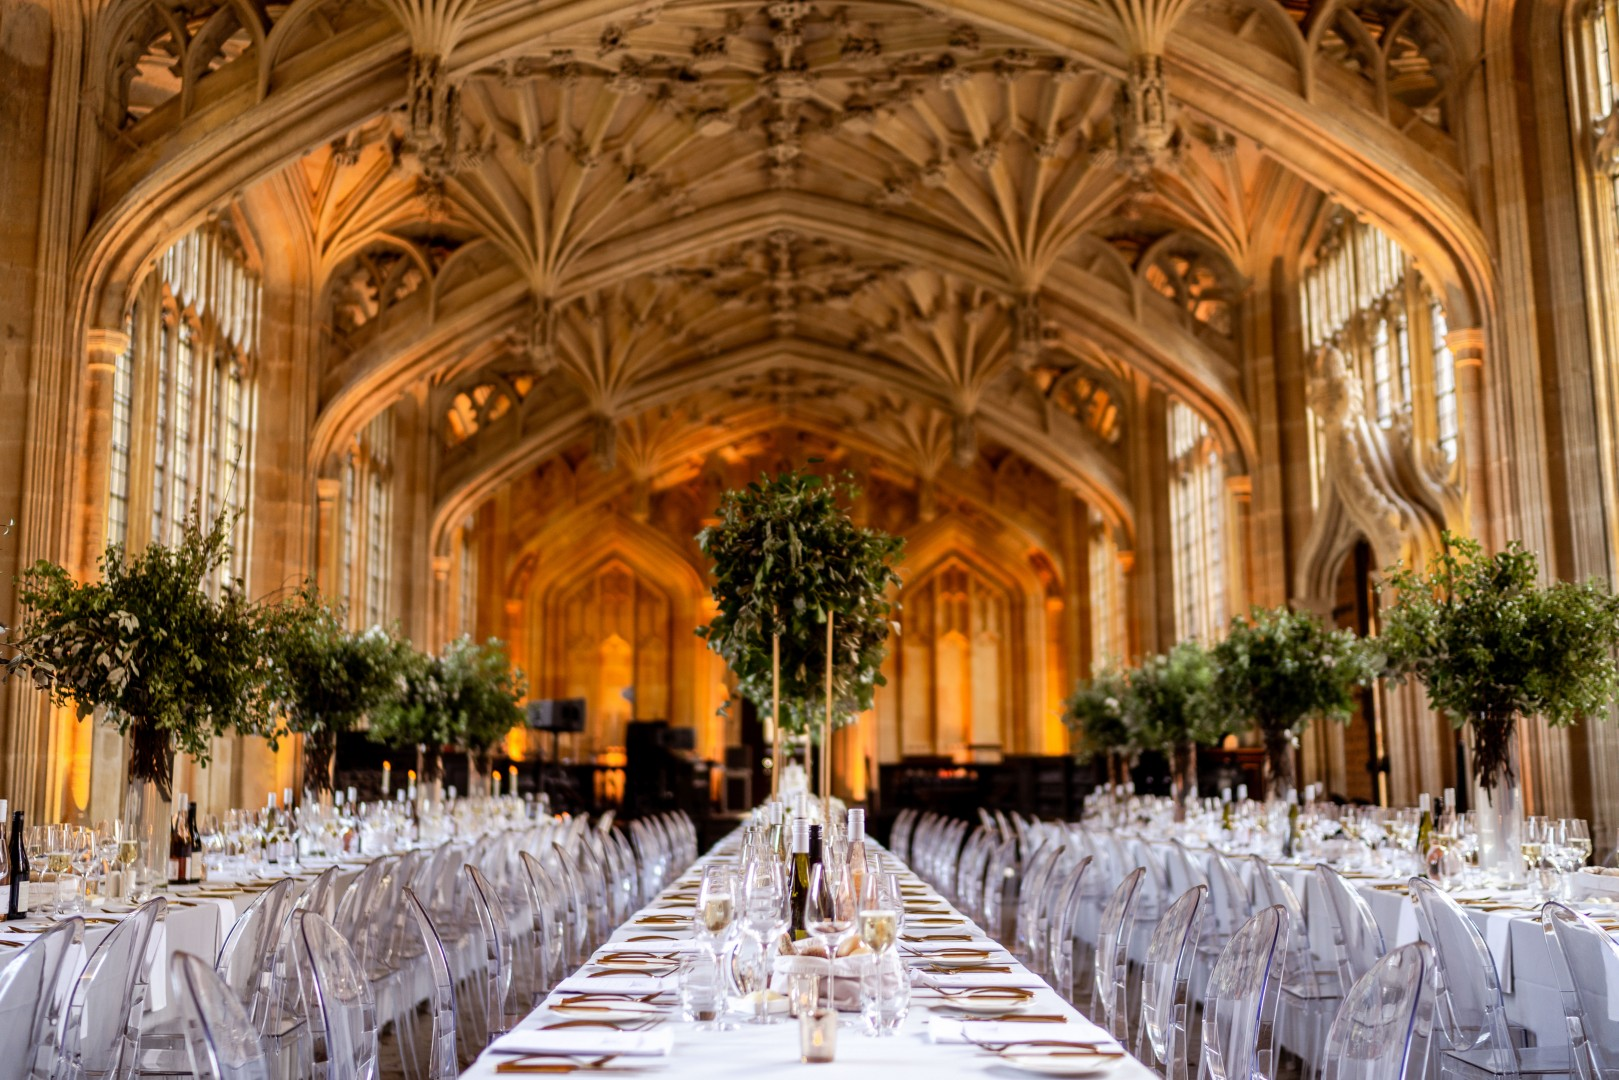 OX Weddings Top 50 Venue Guide - from OX Magazine